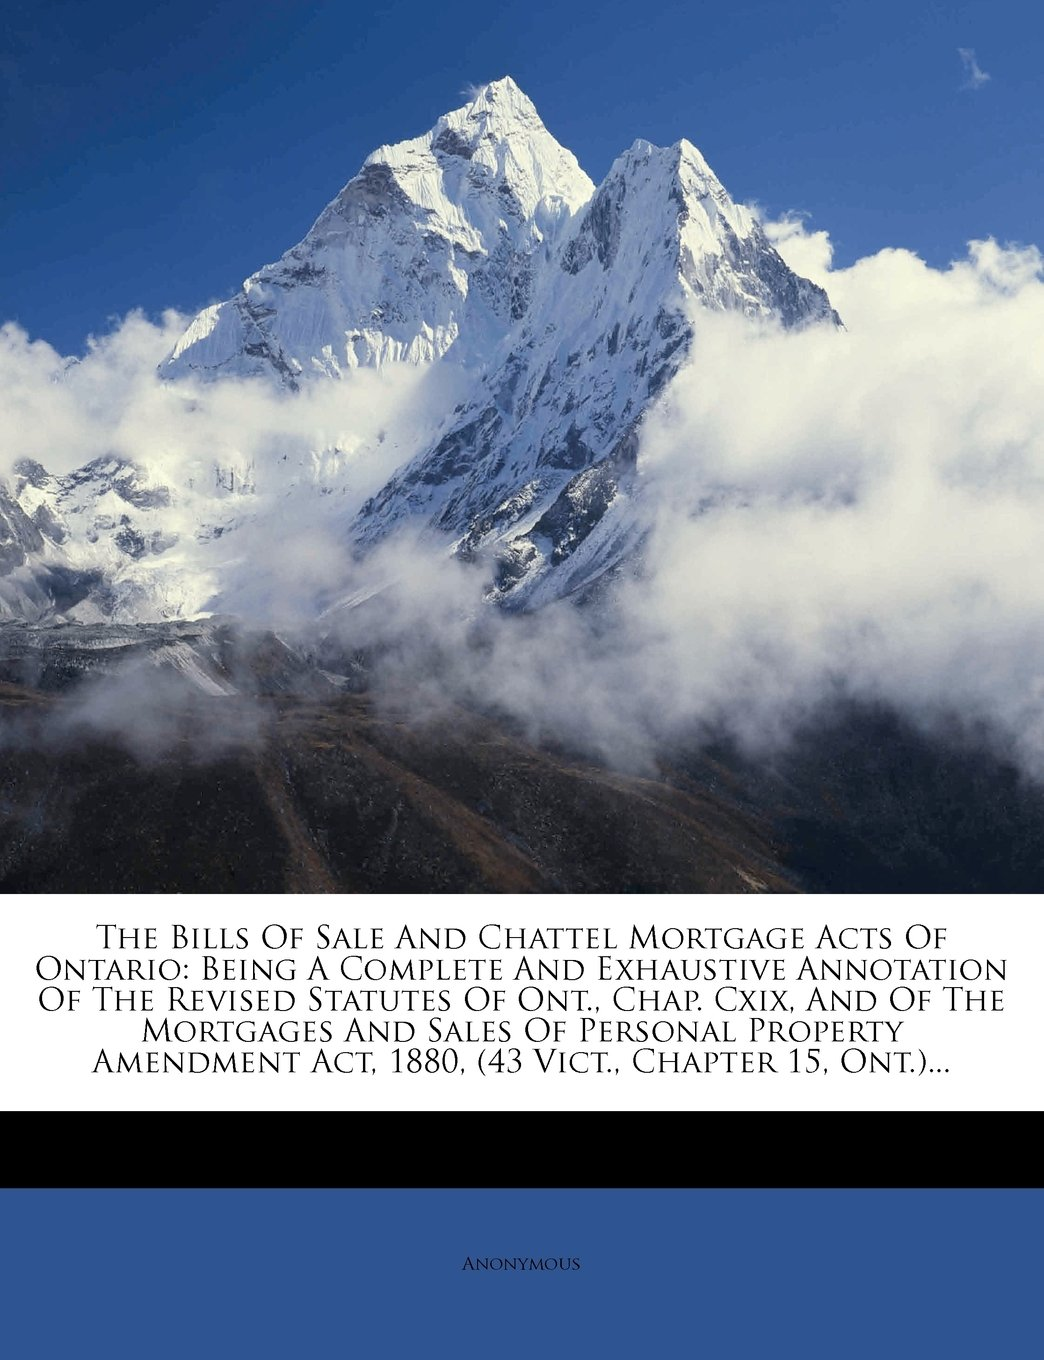 Download The Bills Of Sale And Chattel Mortgage Acts Of Ontario: Being A Complete And Exhaustive Annotation Of The Revised Statutes Of Ont., Chap. Cxix, And Of ... Act, 1880, (43 Vict., Chapter 15, Ont.)... pdf